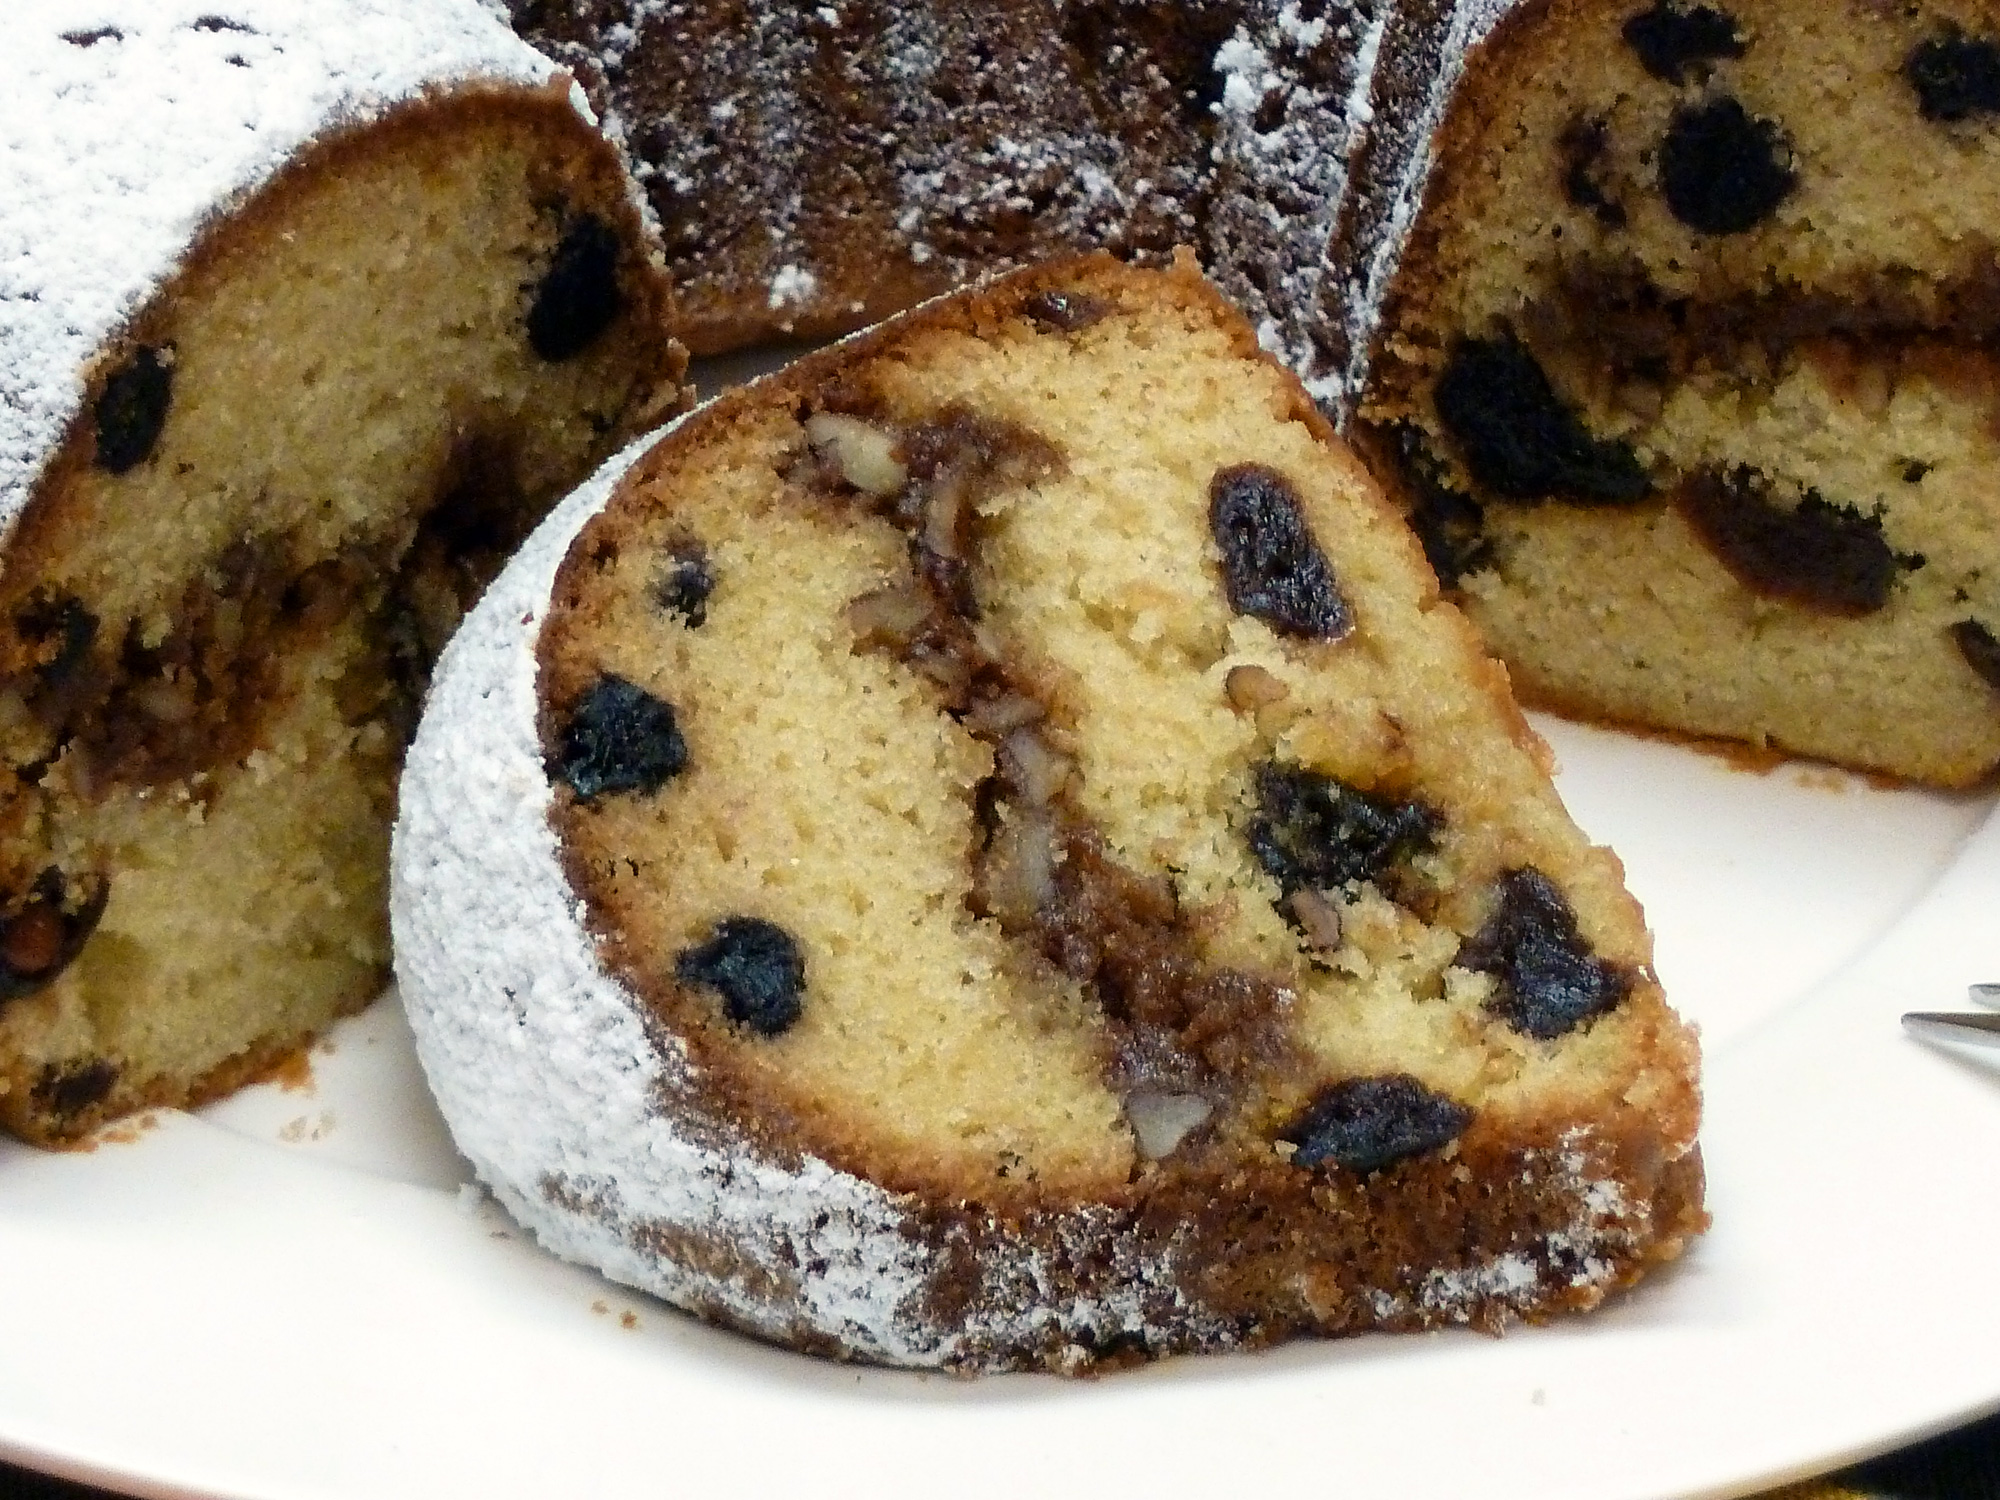 I had to post a close-up of a slice of this Cherry Blueberry Streusel Bundt Cake so you can drool on your keyboard.